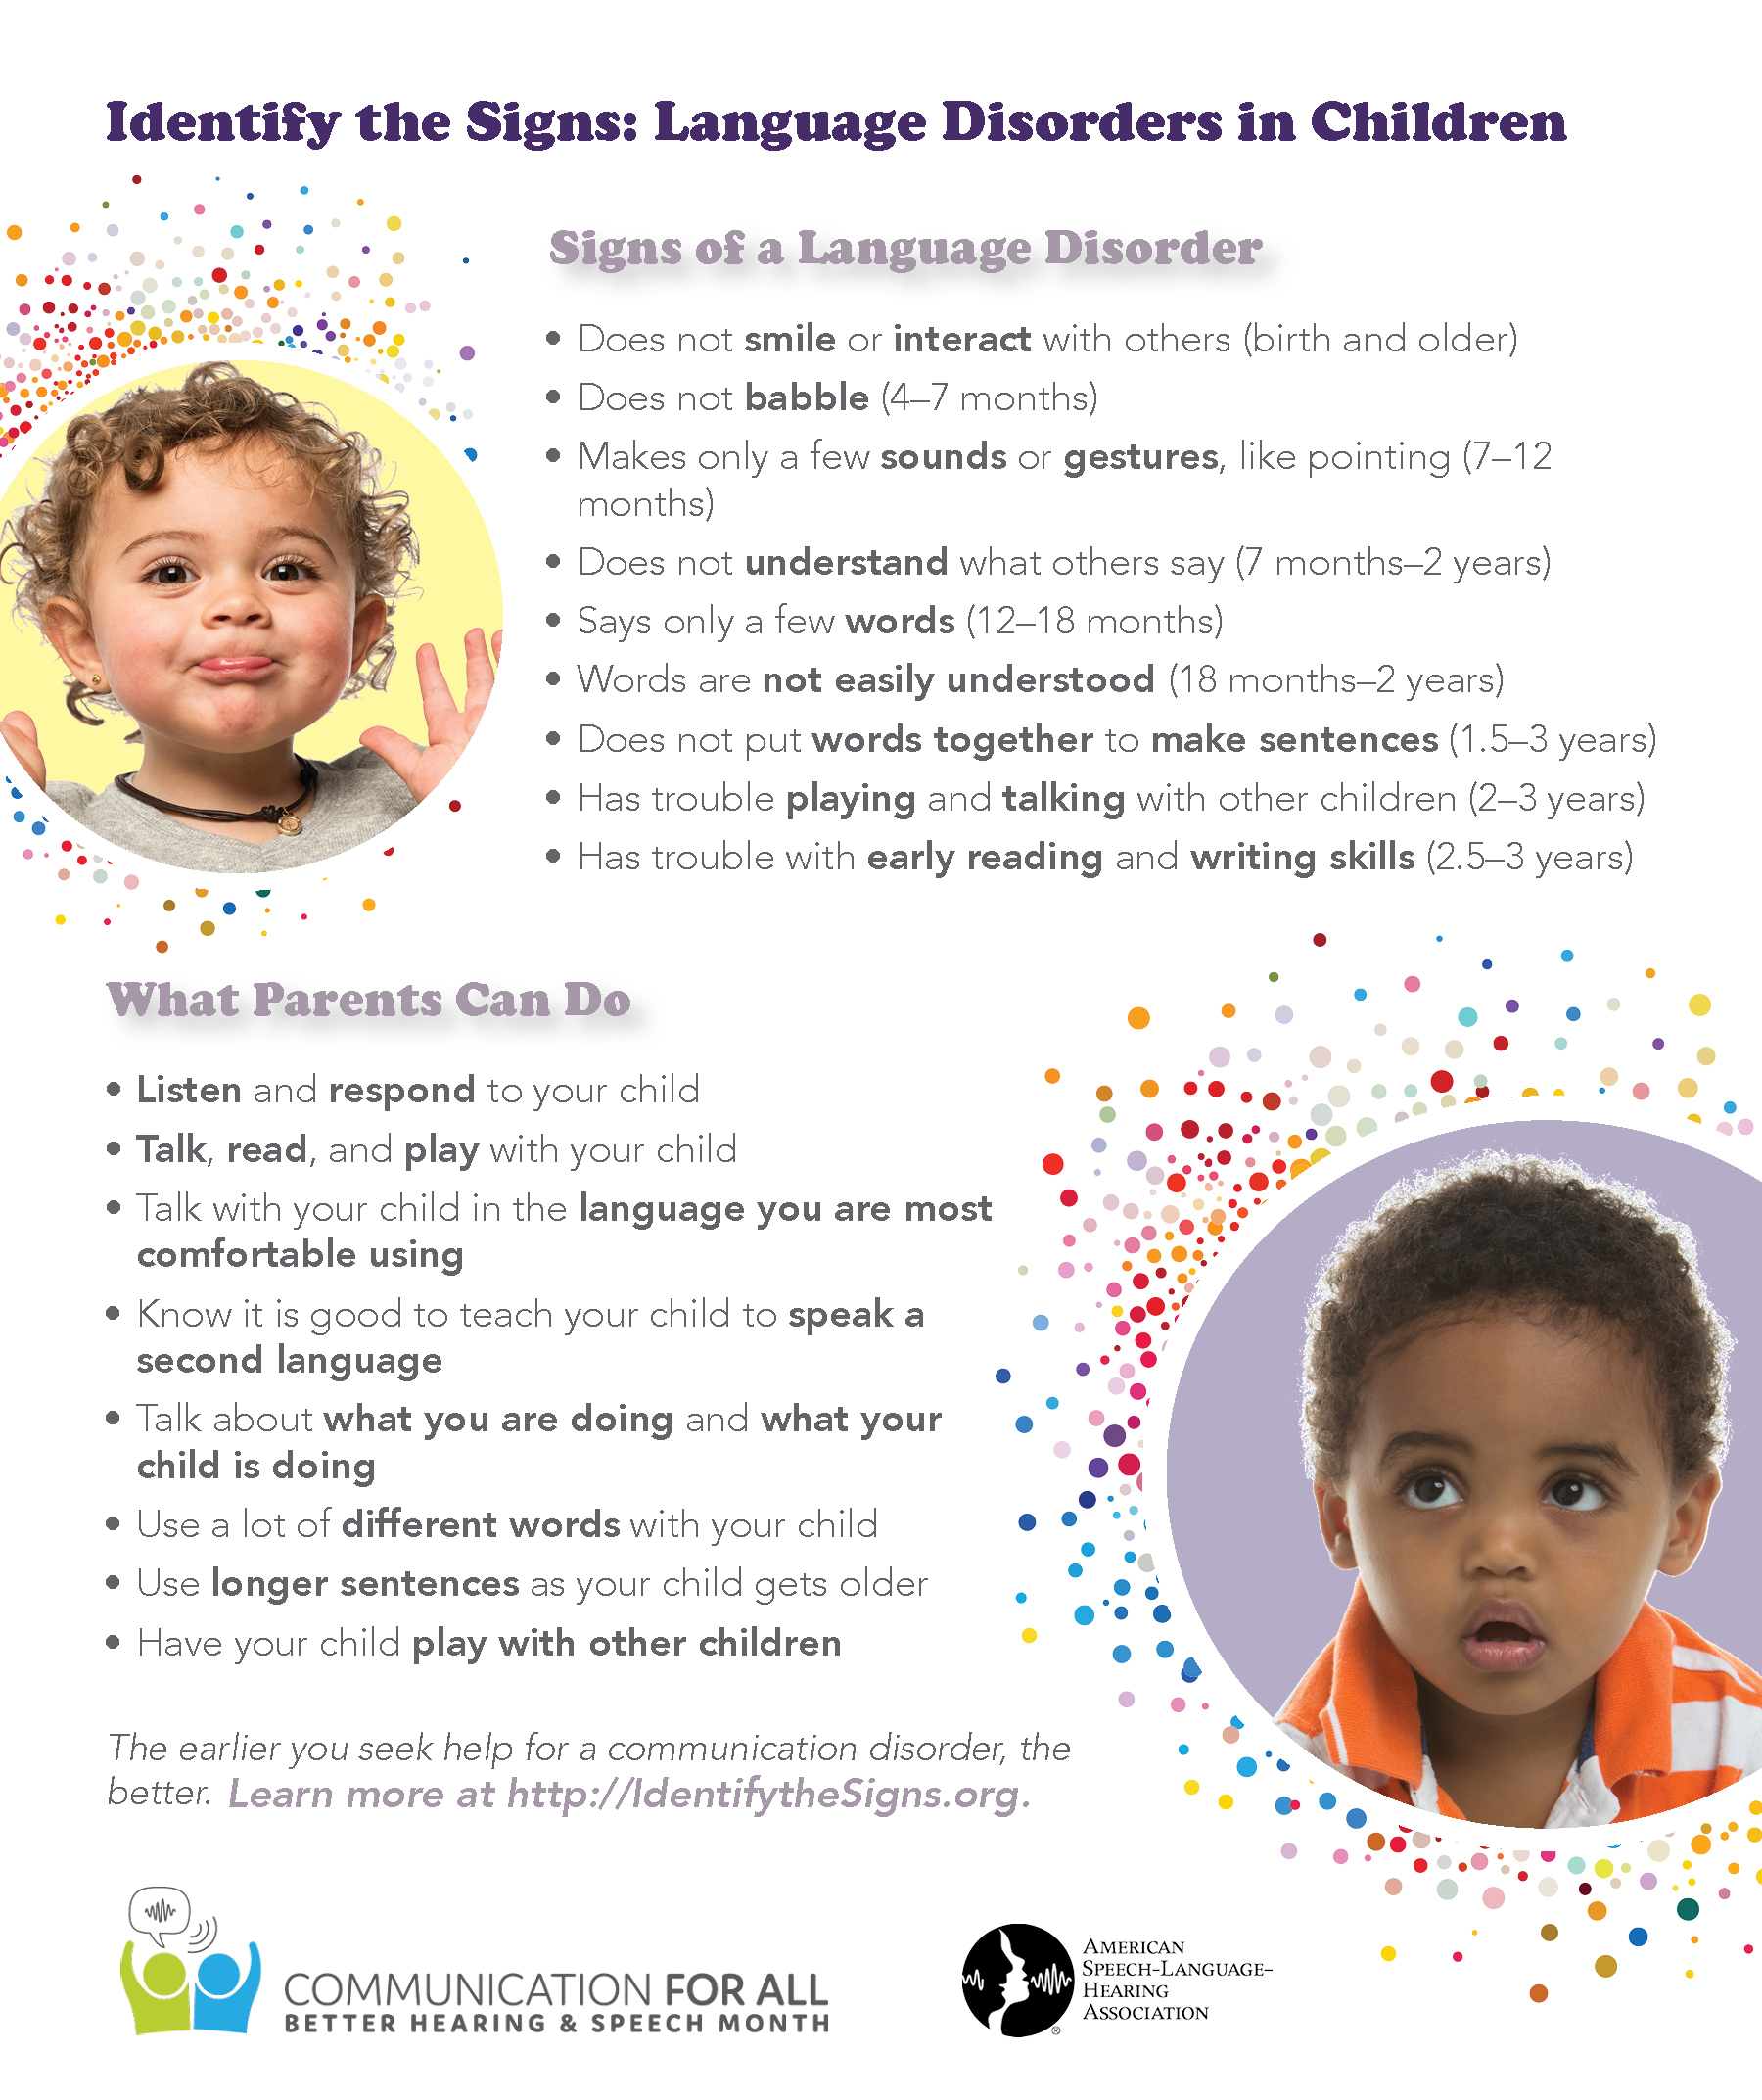 Speech Therapy Plus LLC Provides Therapy For Kids With Speech & Language Disorders Throughout Bergen County New Jersey.